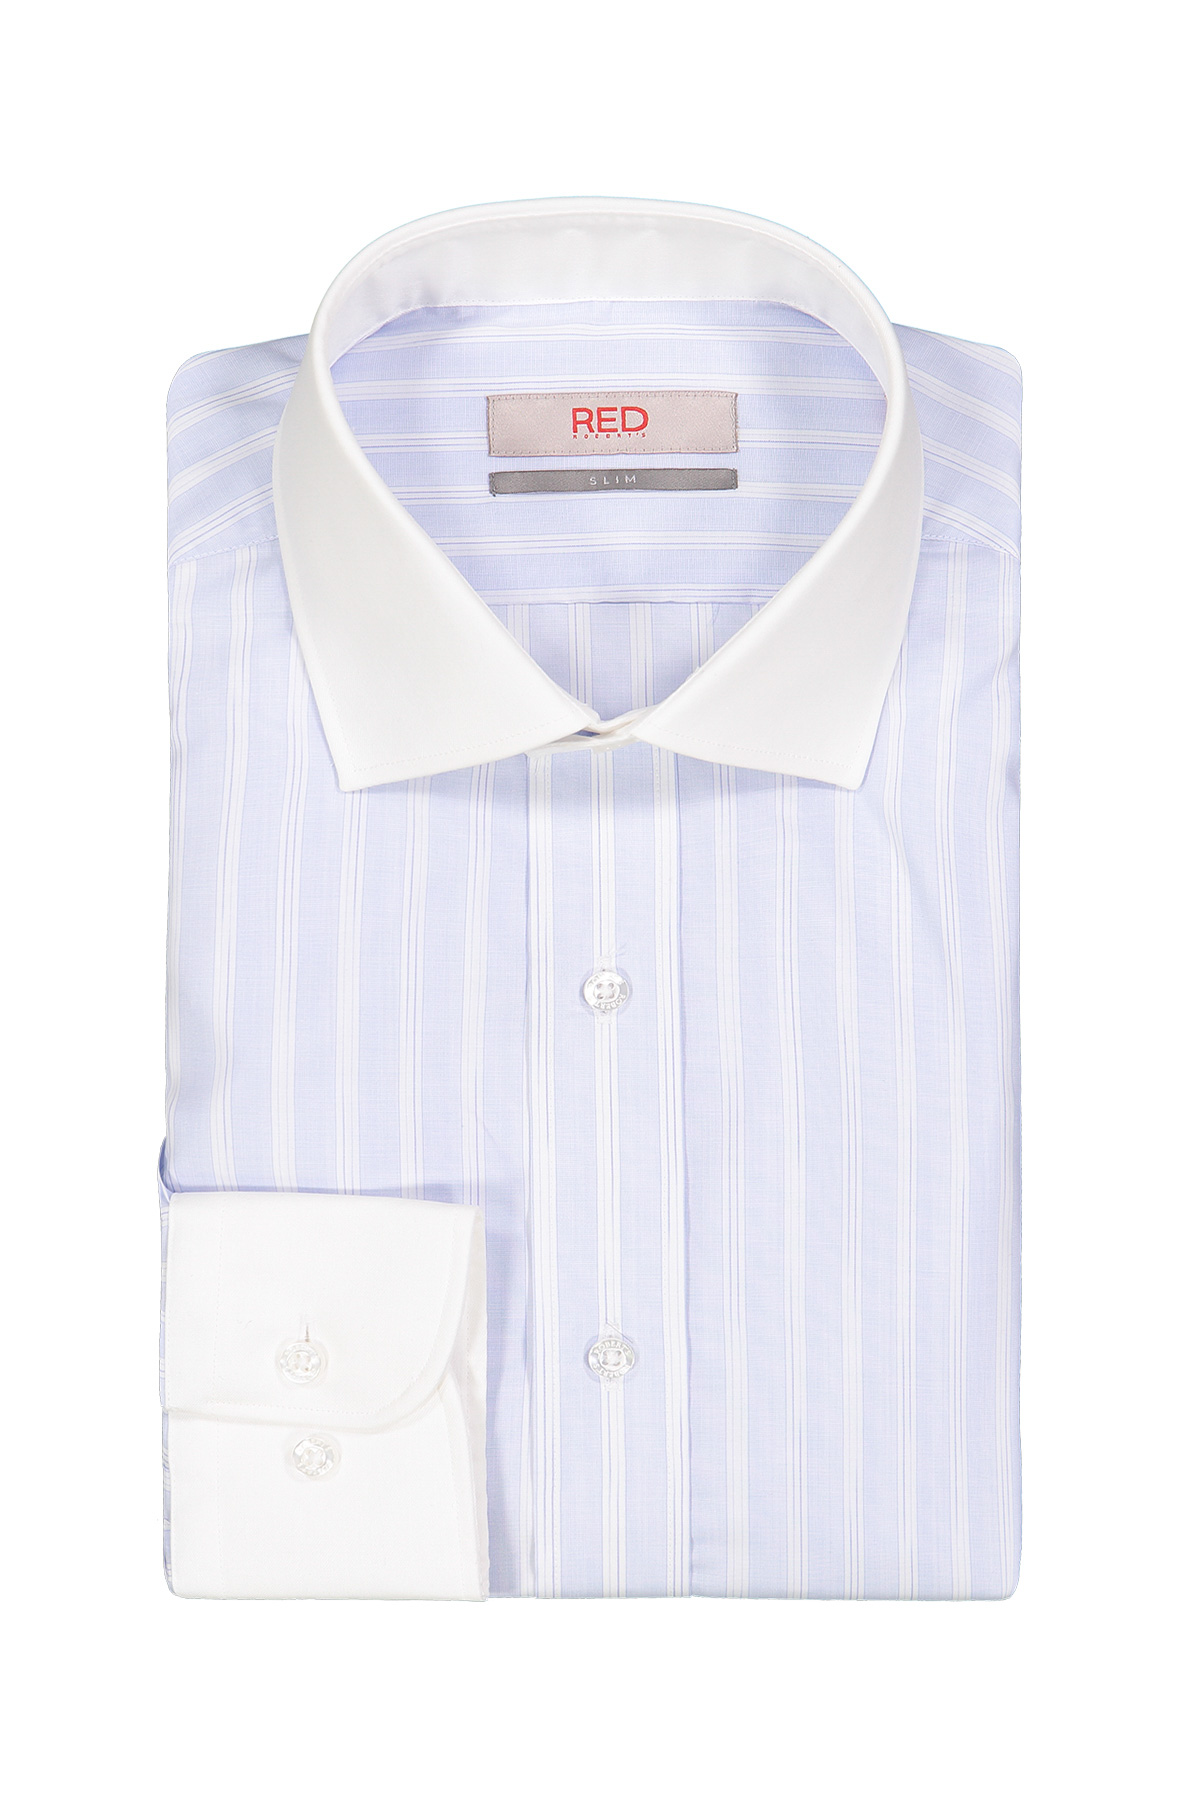 Camisa Robert´s Red, slim fit, celeste rayada puños y cuello blanco.